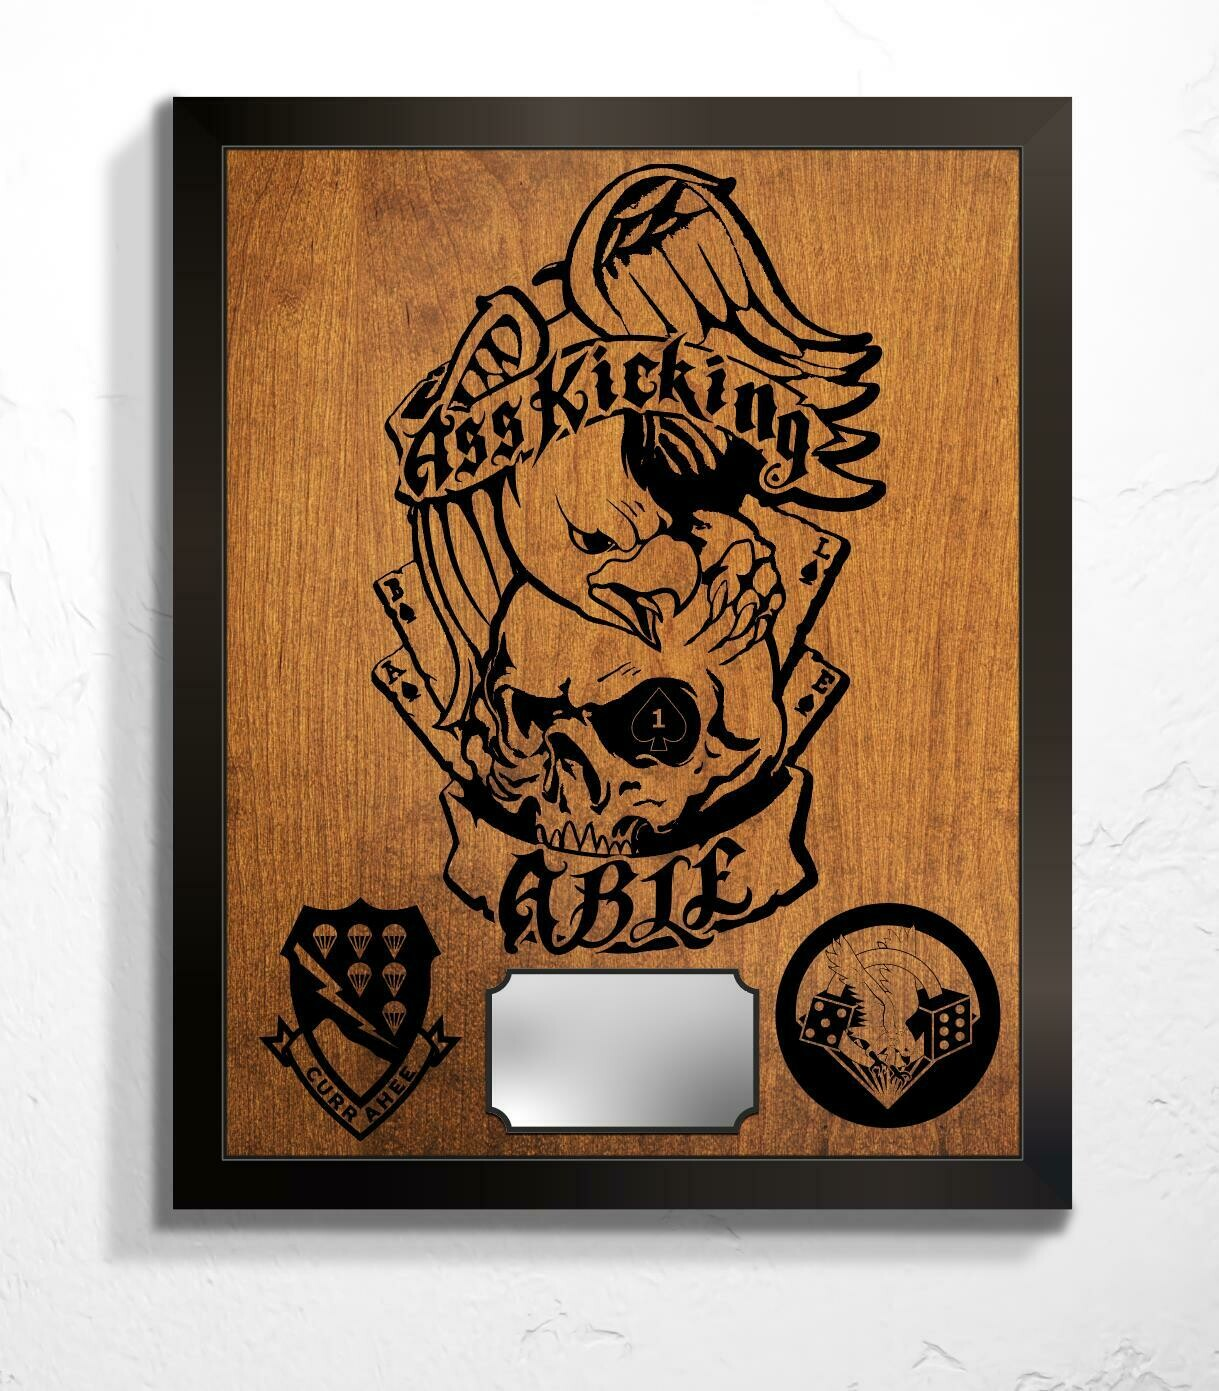 """Ass Kicking Able 1-506th Plaque 20.5""""x16.5"""""""